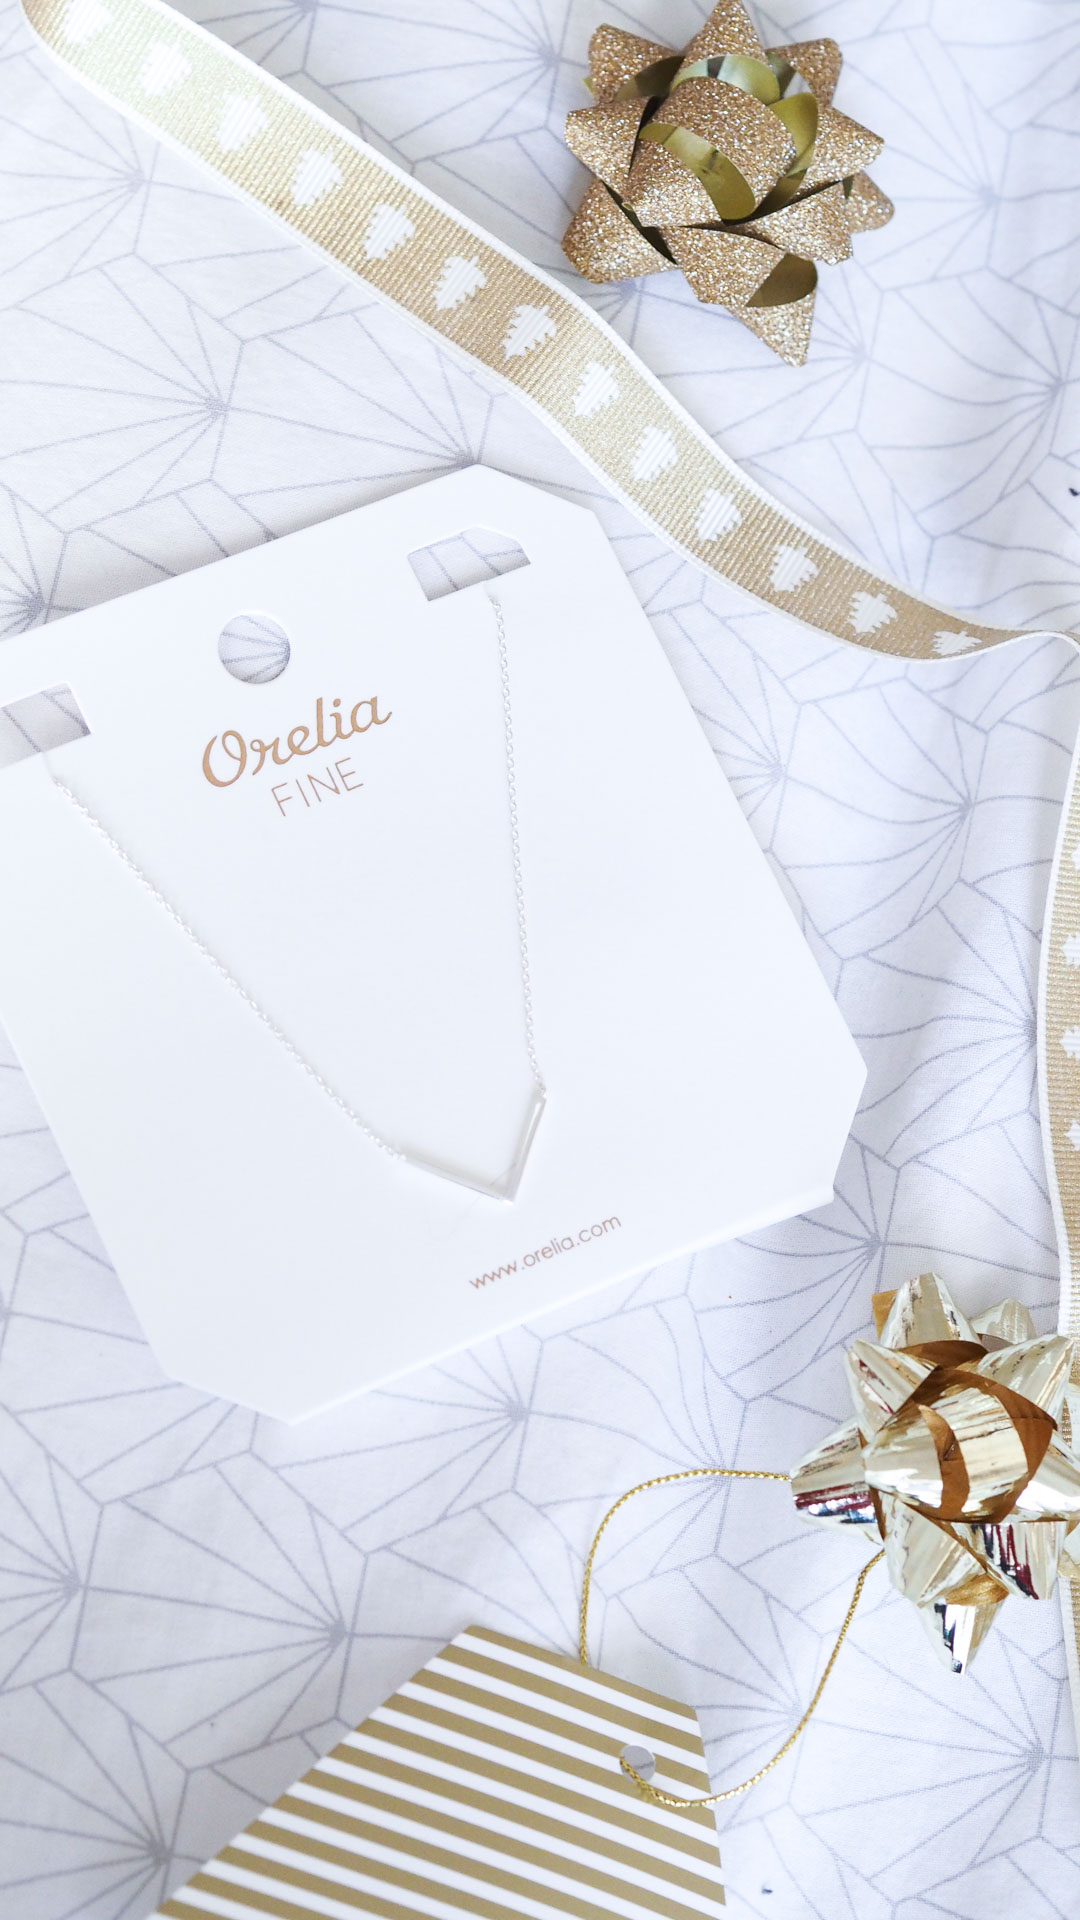 Orelia jewellery gift christmas. gifts for her